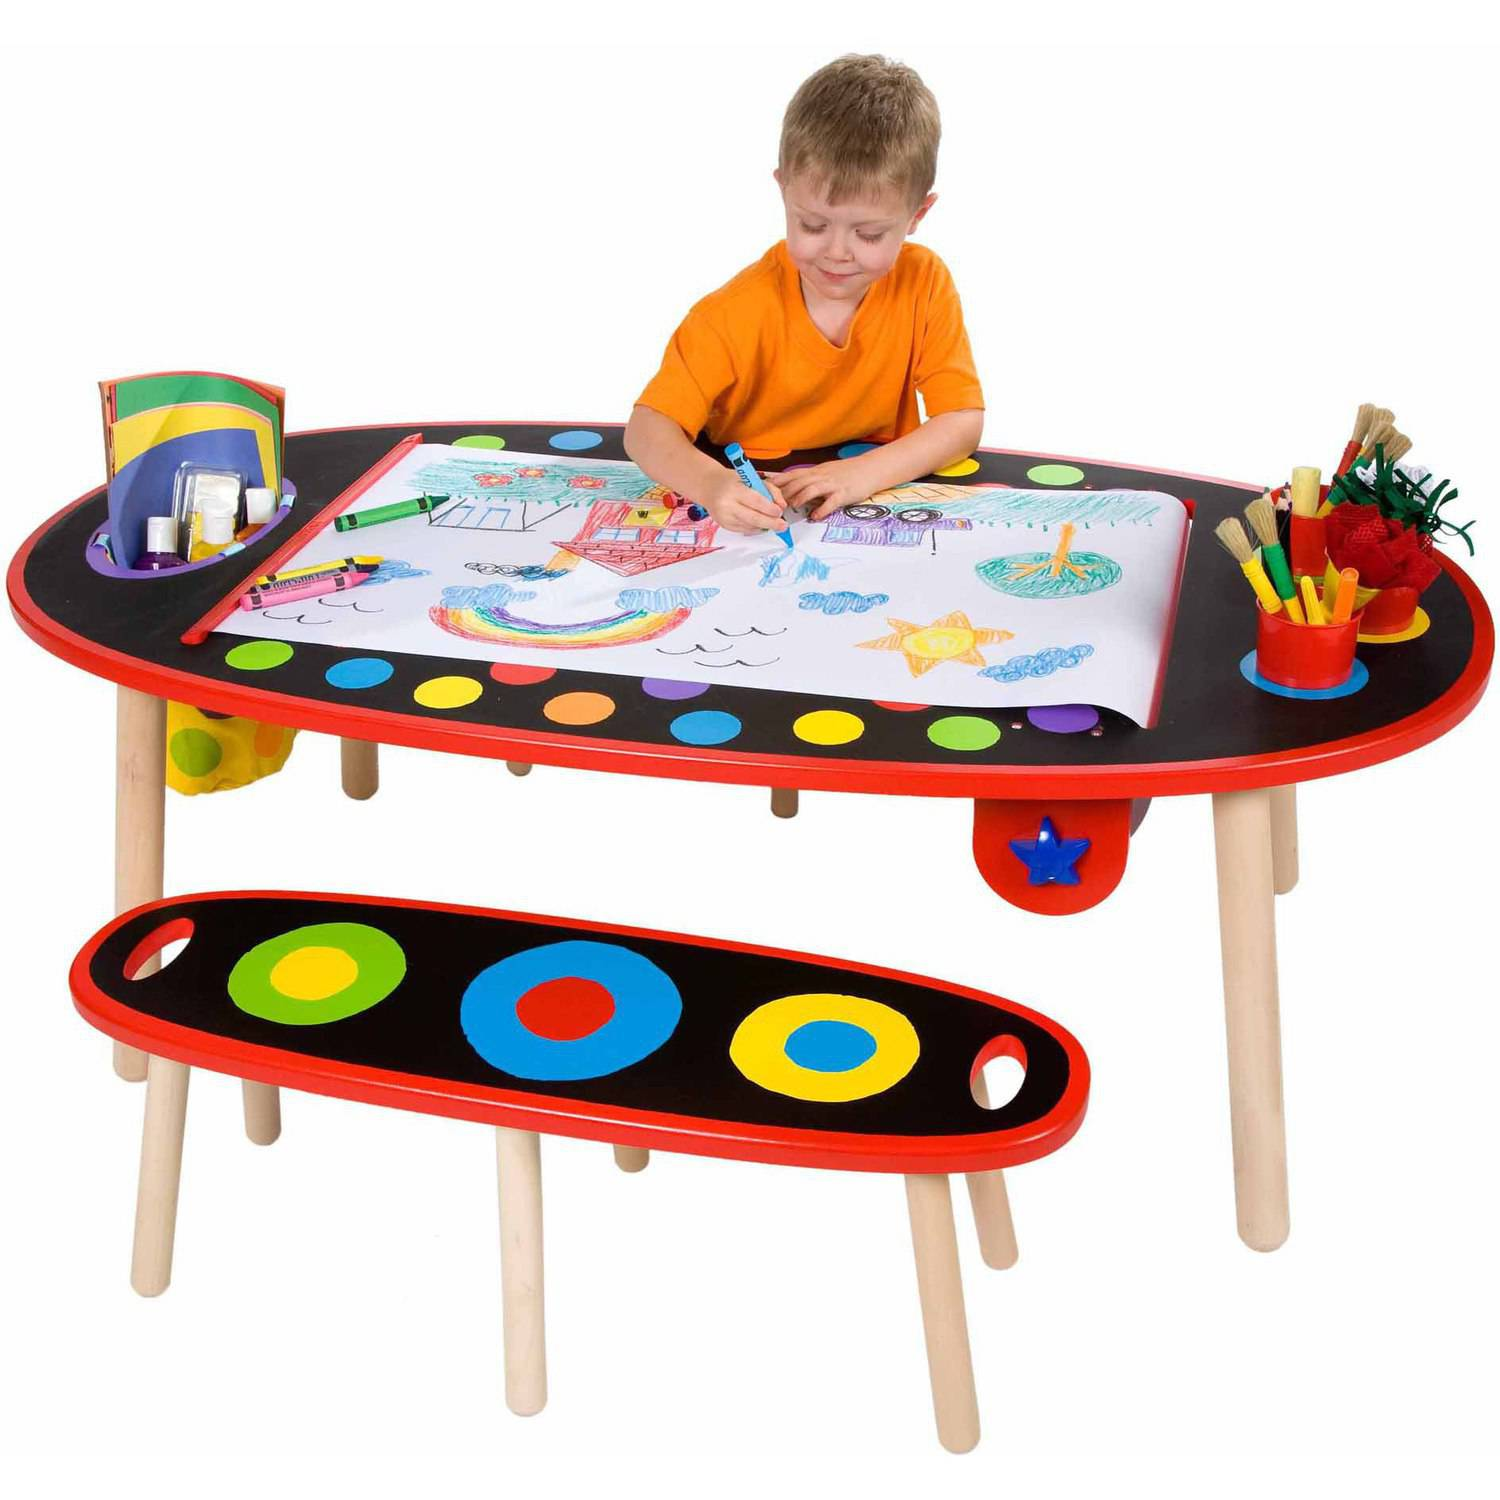 Alex Toys 711W Super Art Table with Paper Roll